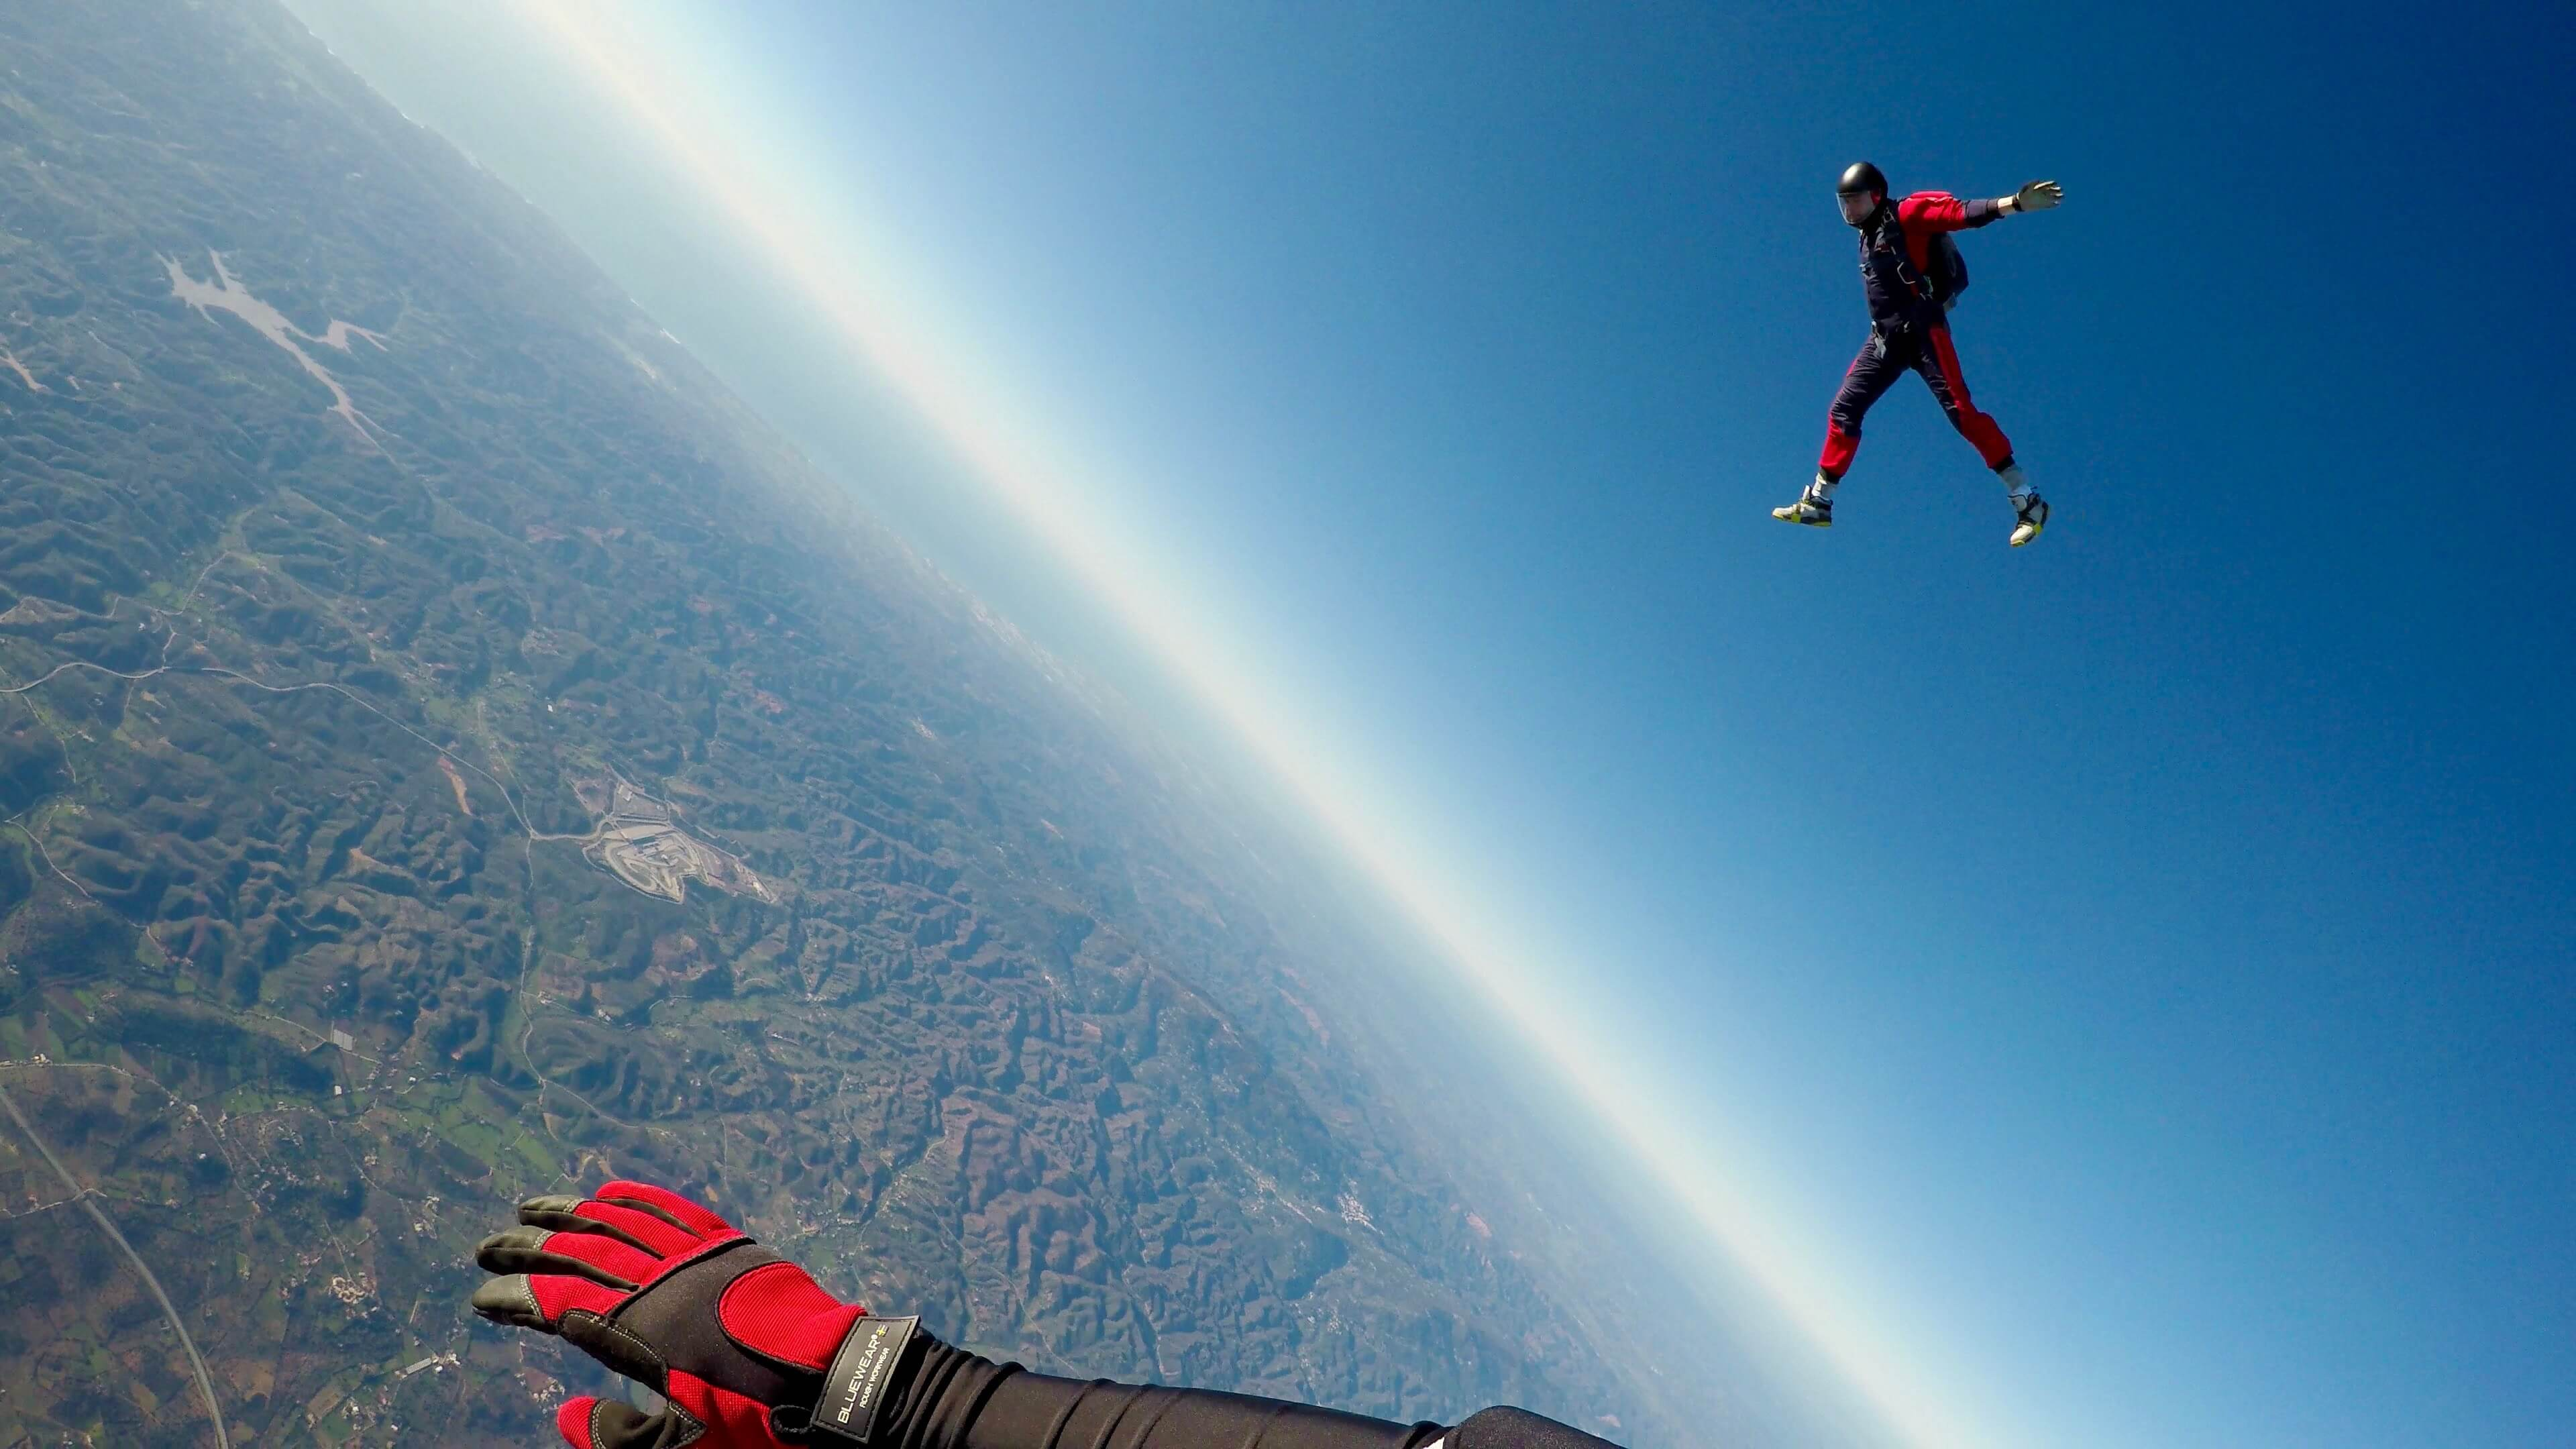 the amazing 15,000 sky diving experience in Byron Bay